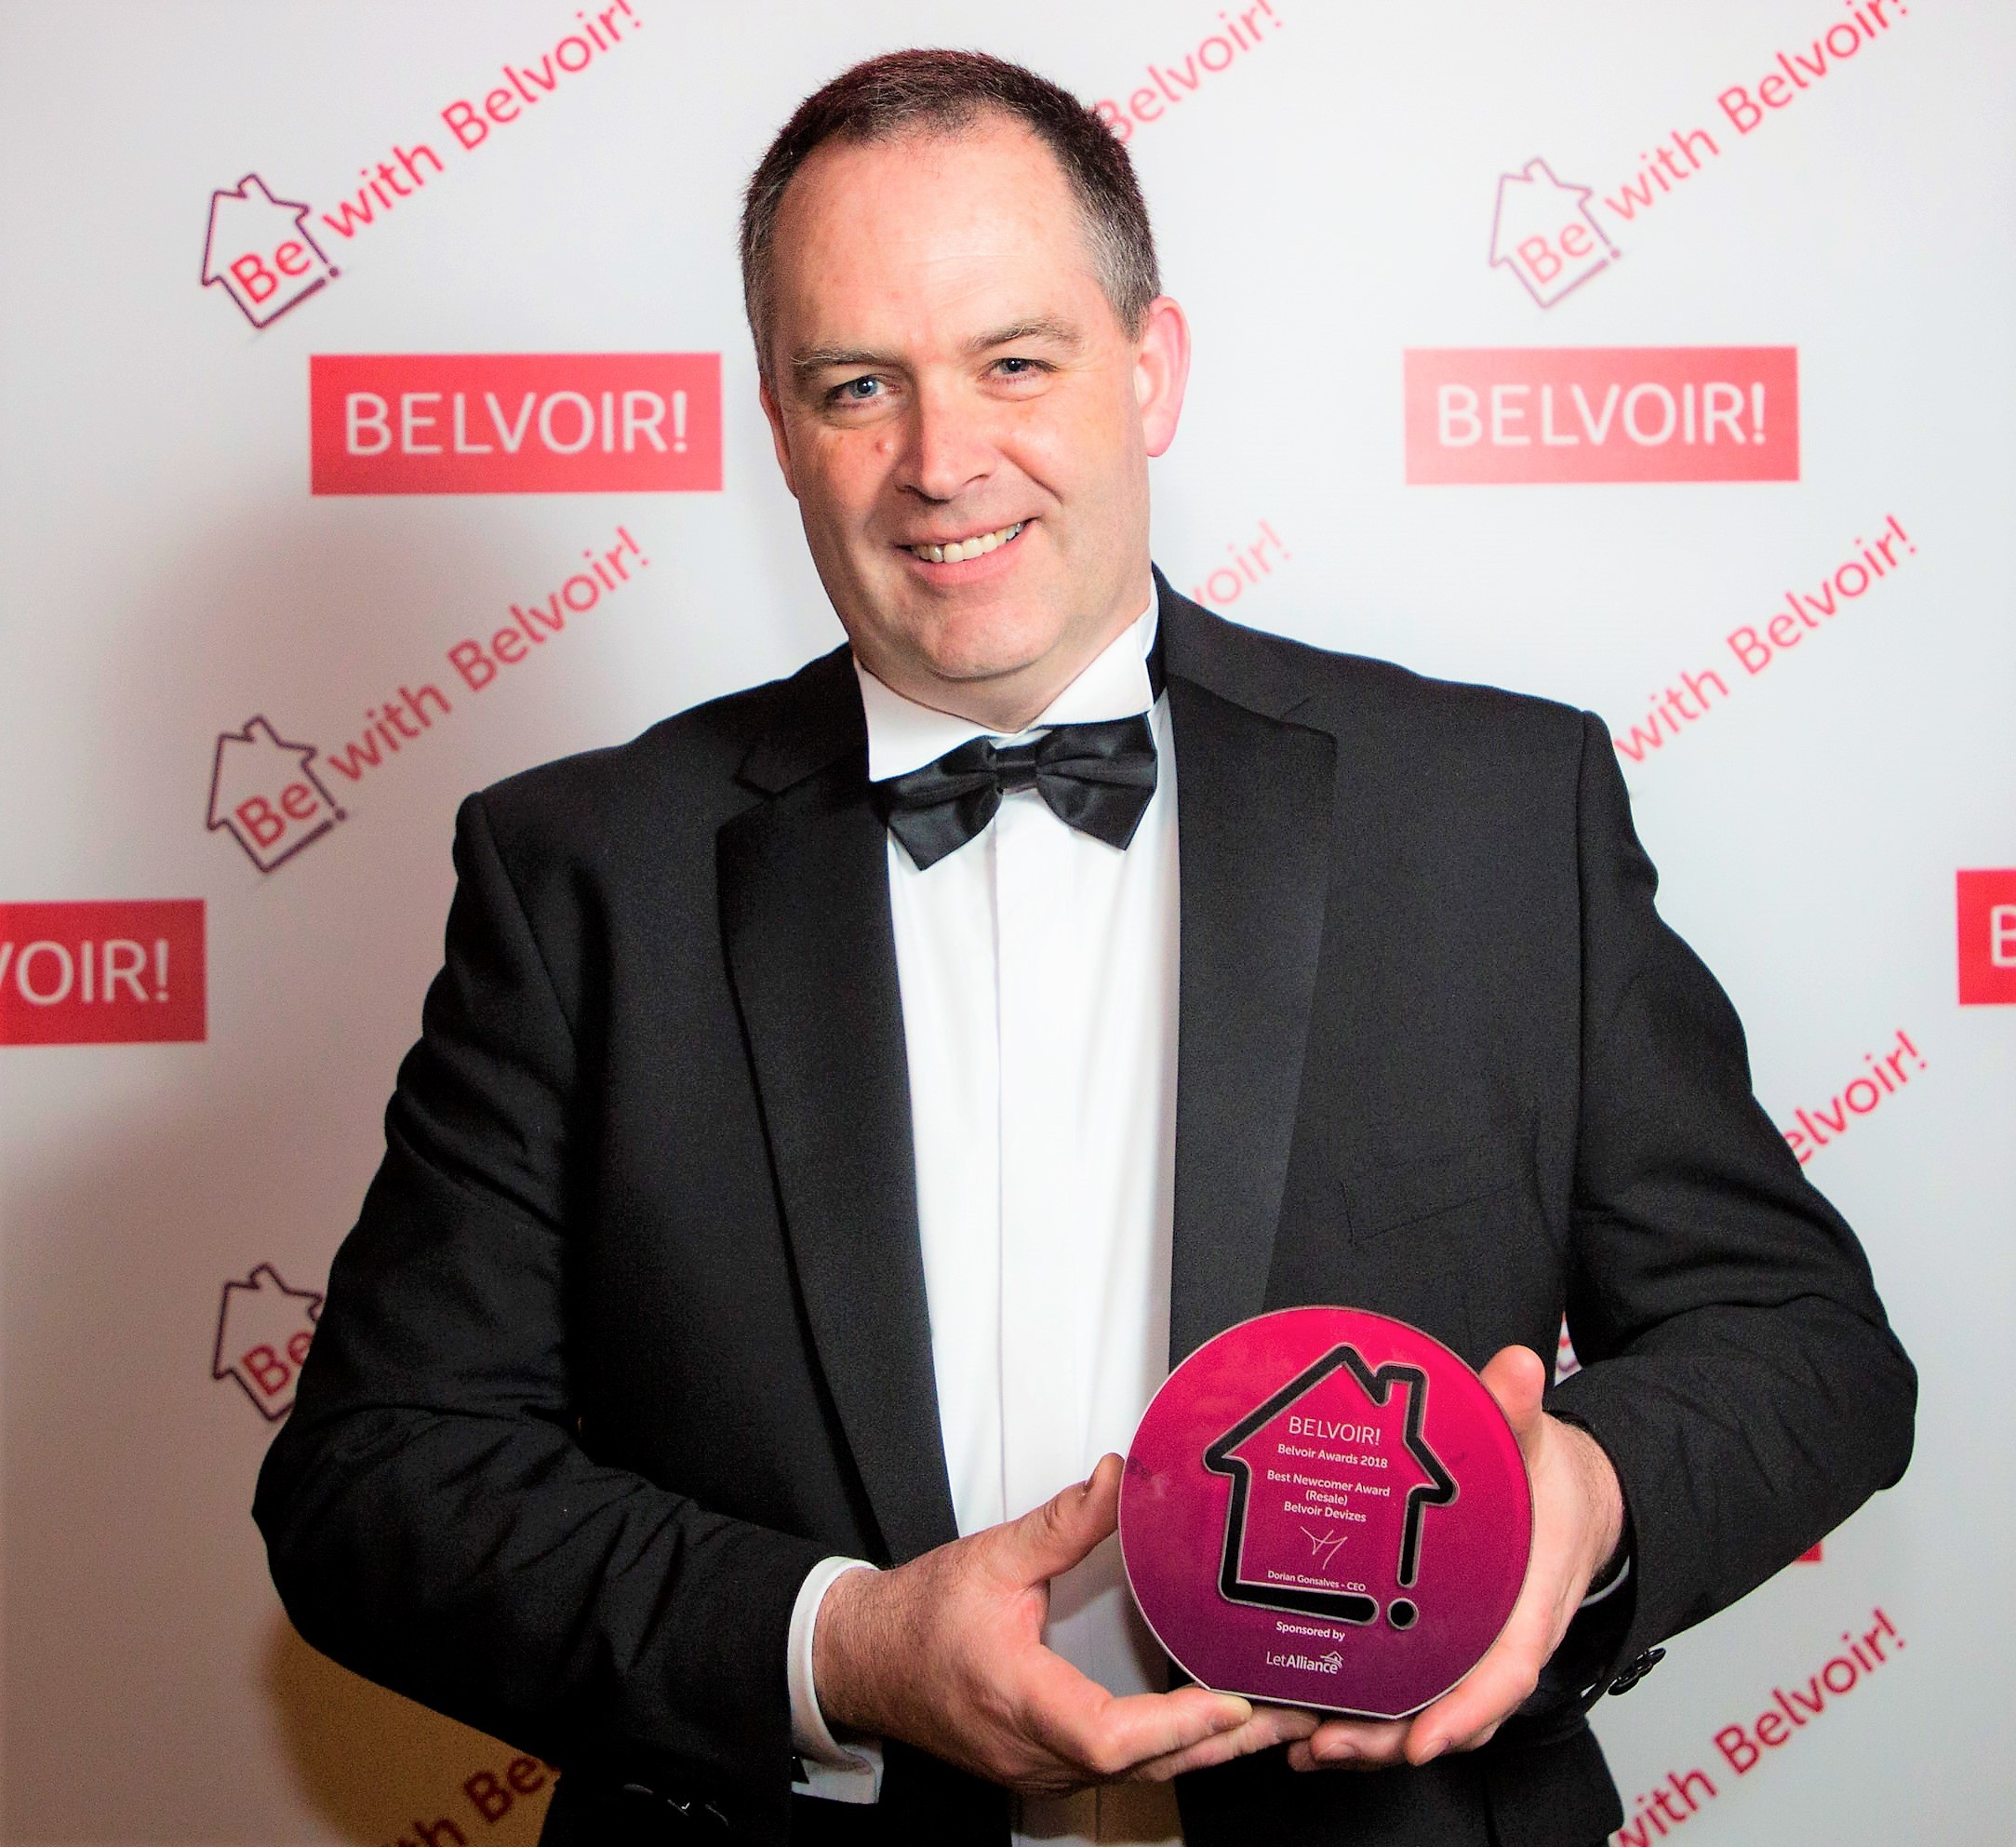 David Devlin, owner of Belvoir franchise in Devizes honours his team and predecessor when receiving the Gold Award.